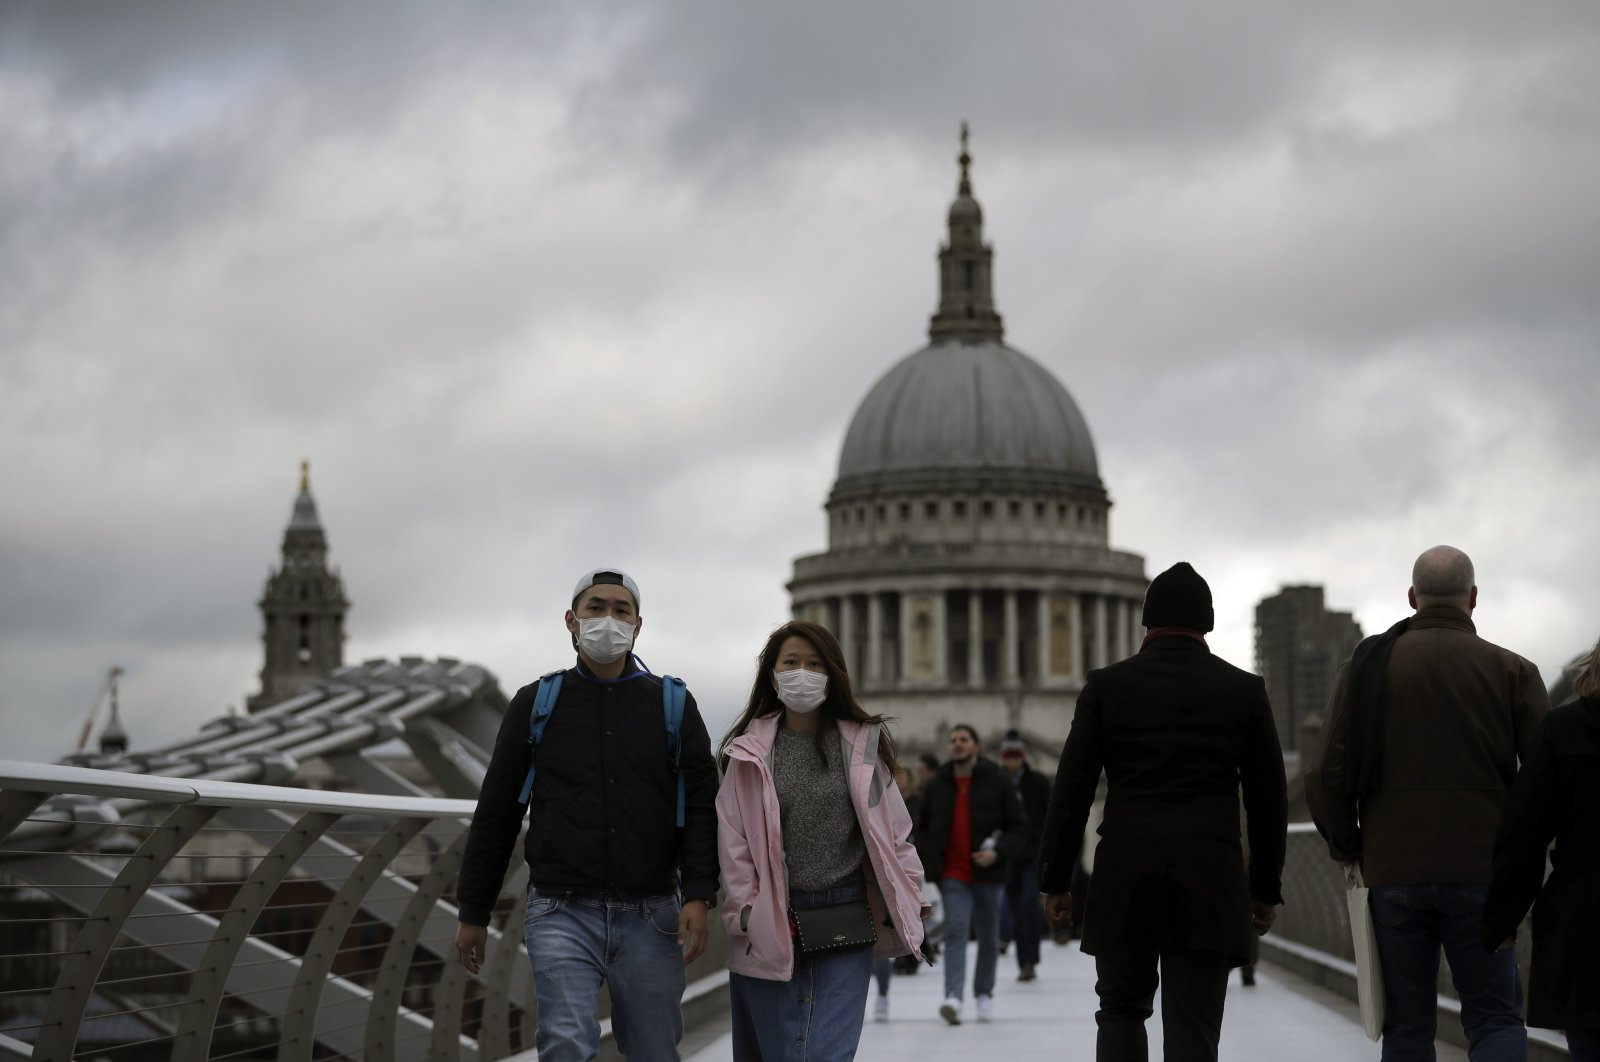 People wearing face masks walk across the Millennium footbridge backdropped by the dome of St. Paul's Cathedral in London, Tuesday, March 10, 2020. (AP Photo)